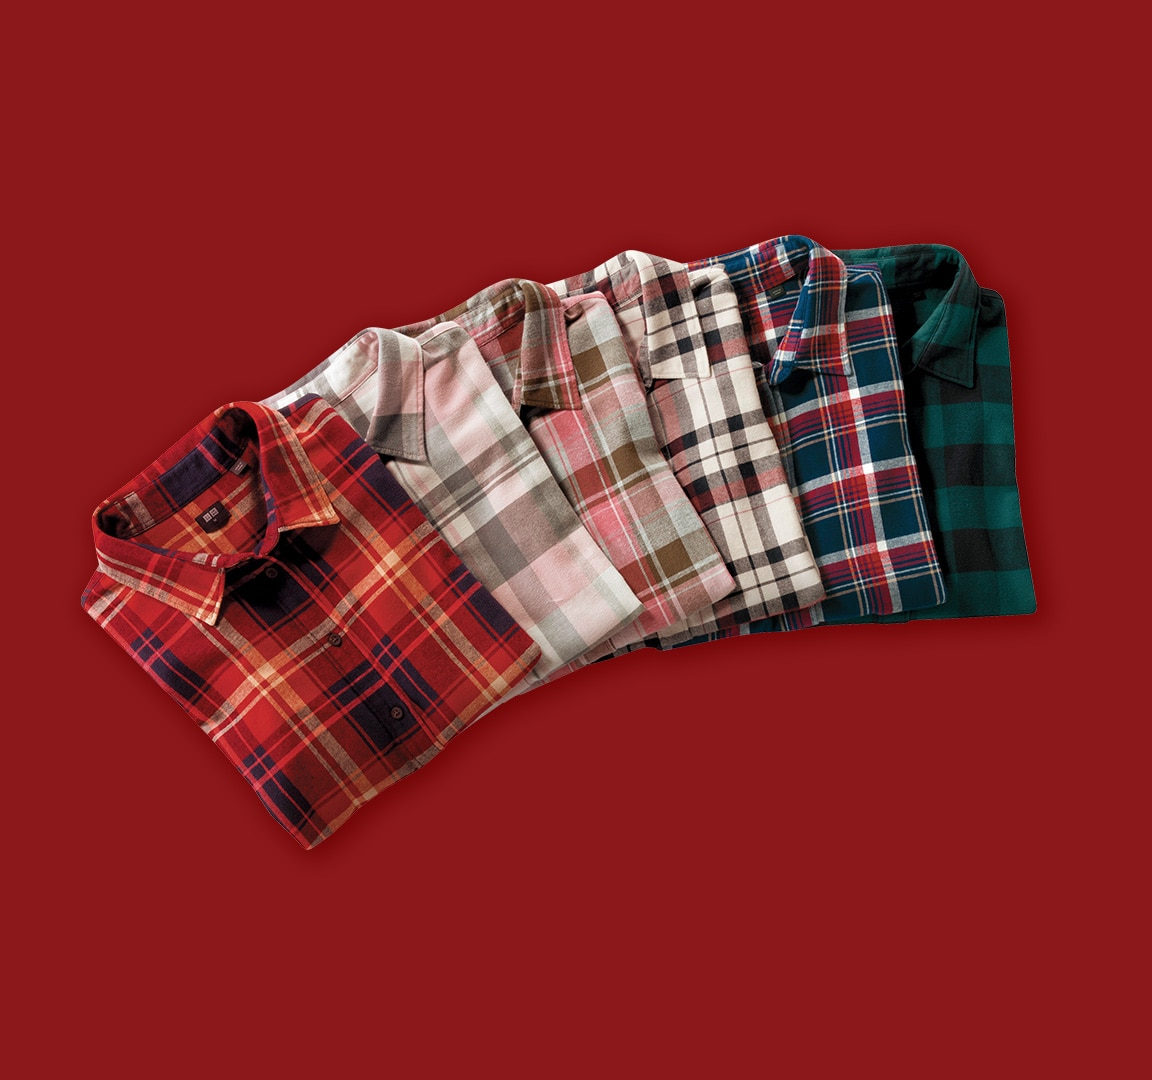 Flannel Shirts detail